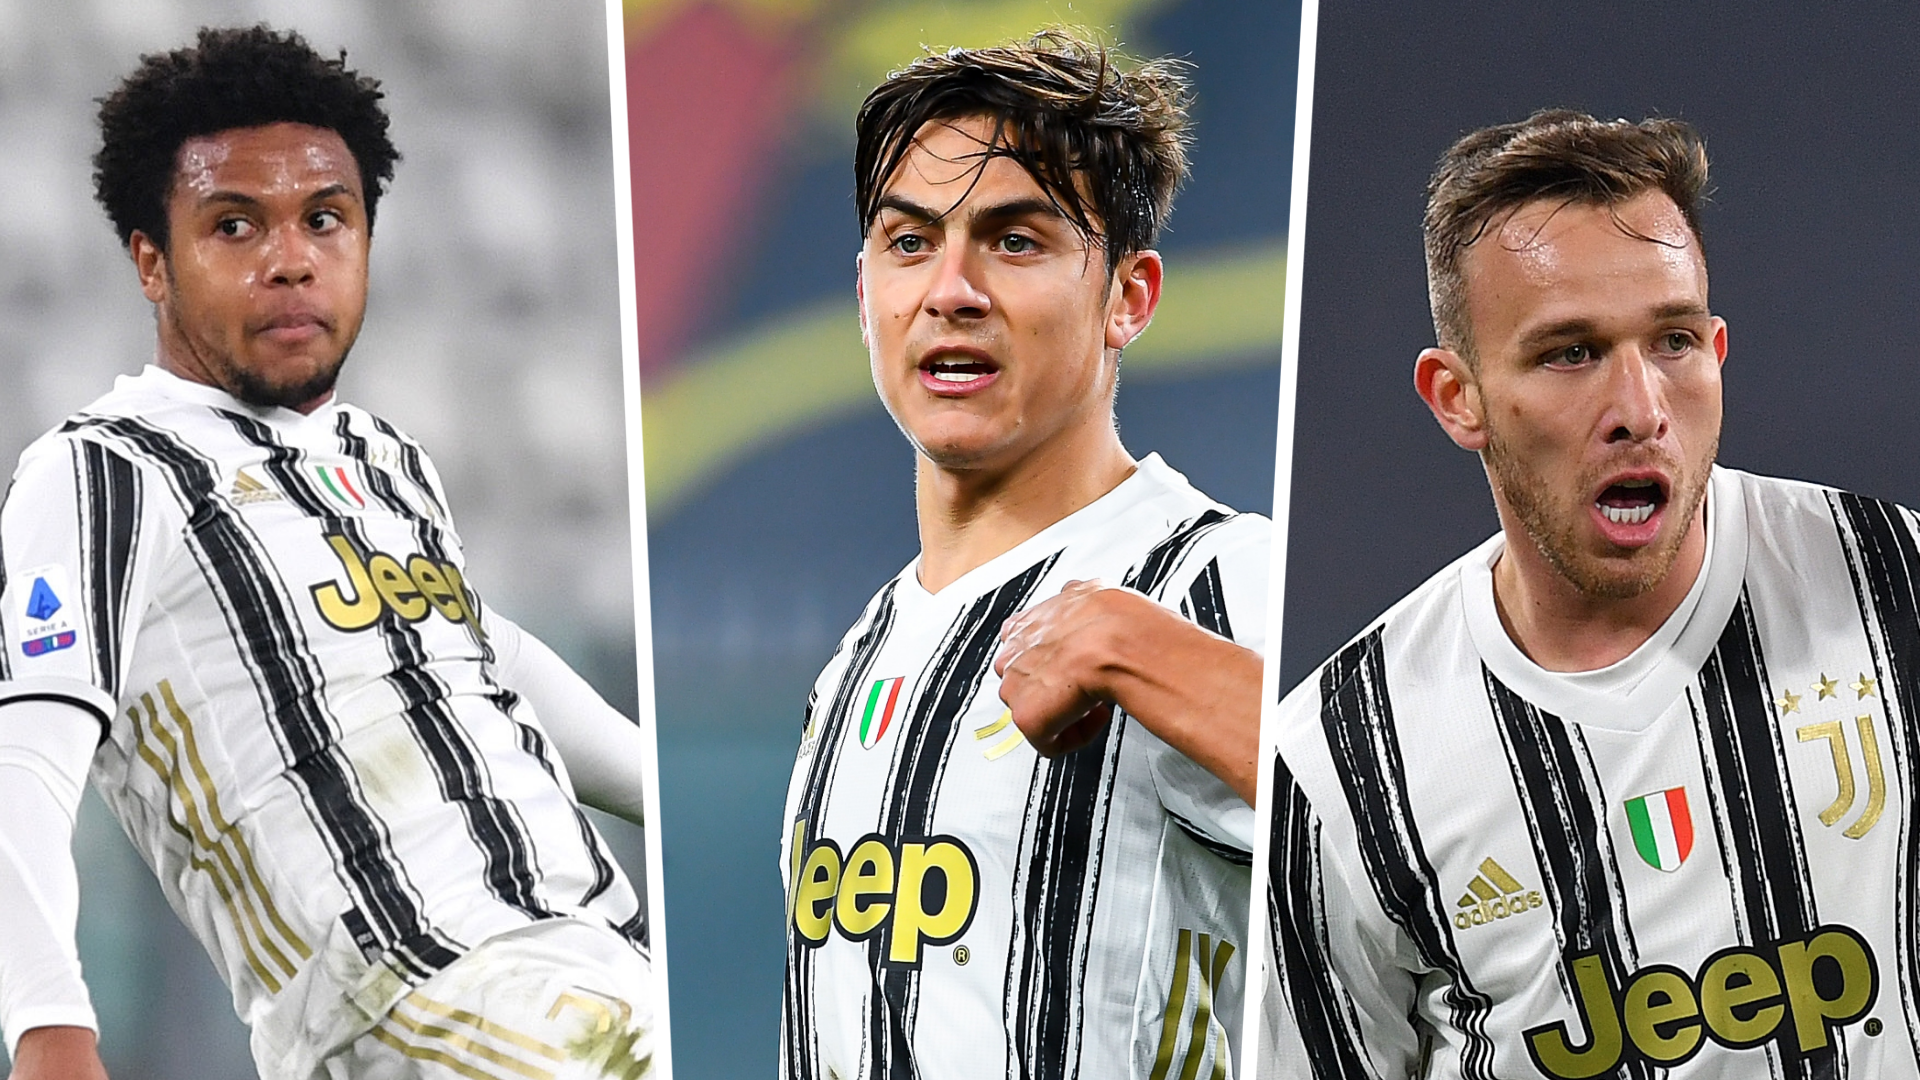 McKennie, Arthur and Dybala return to Juventus against Napoli after being suspended for breaking the blockade party